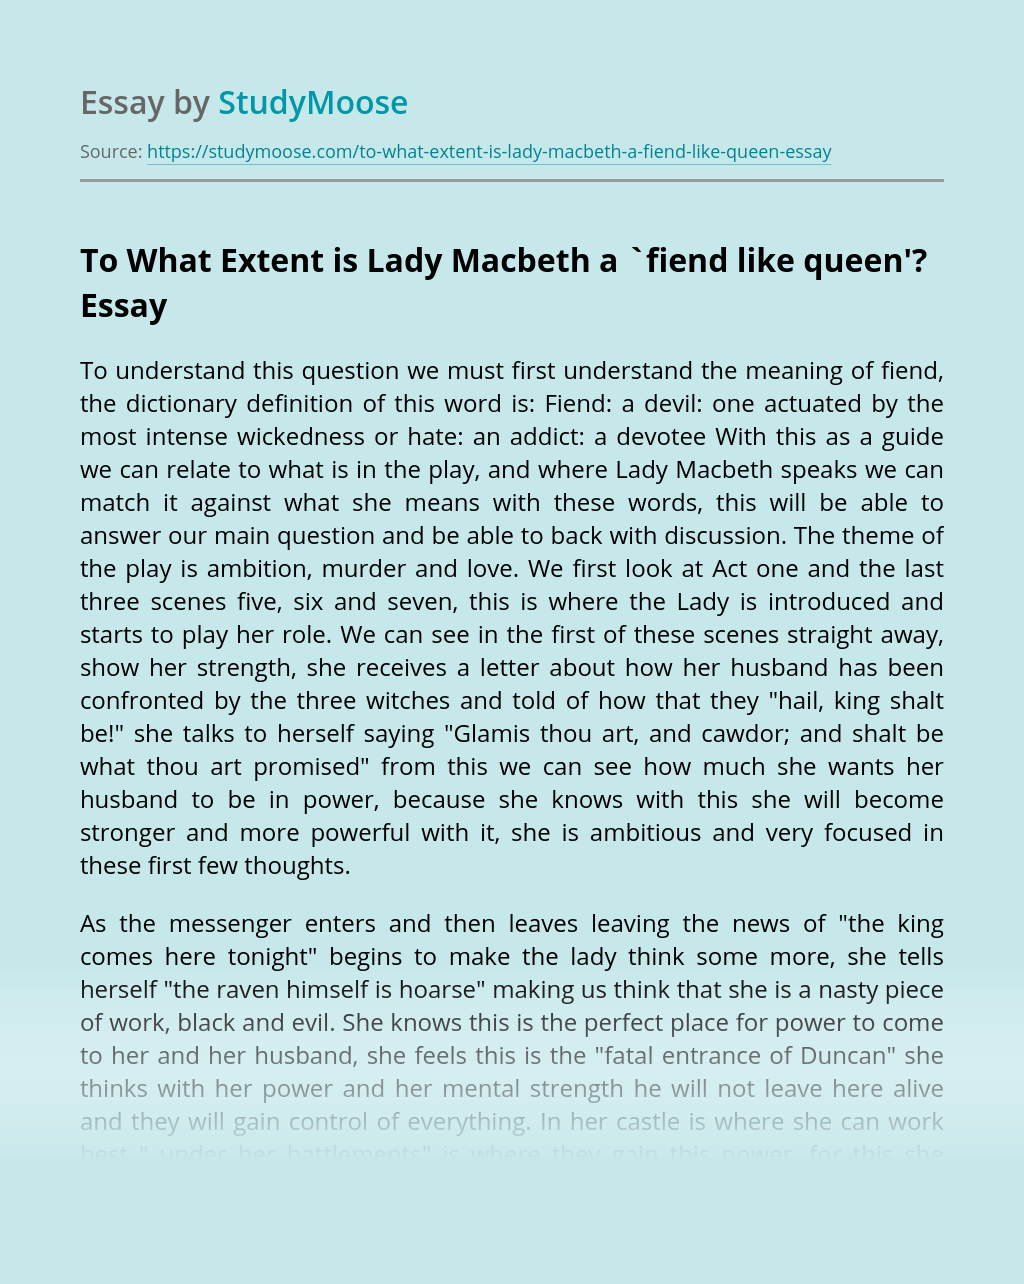 To What Extent is Lady Macbeth a `fiend like queen'?